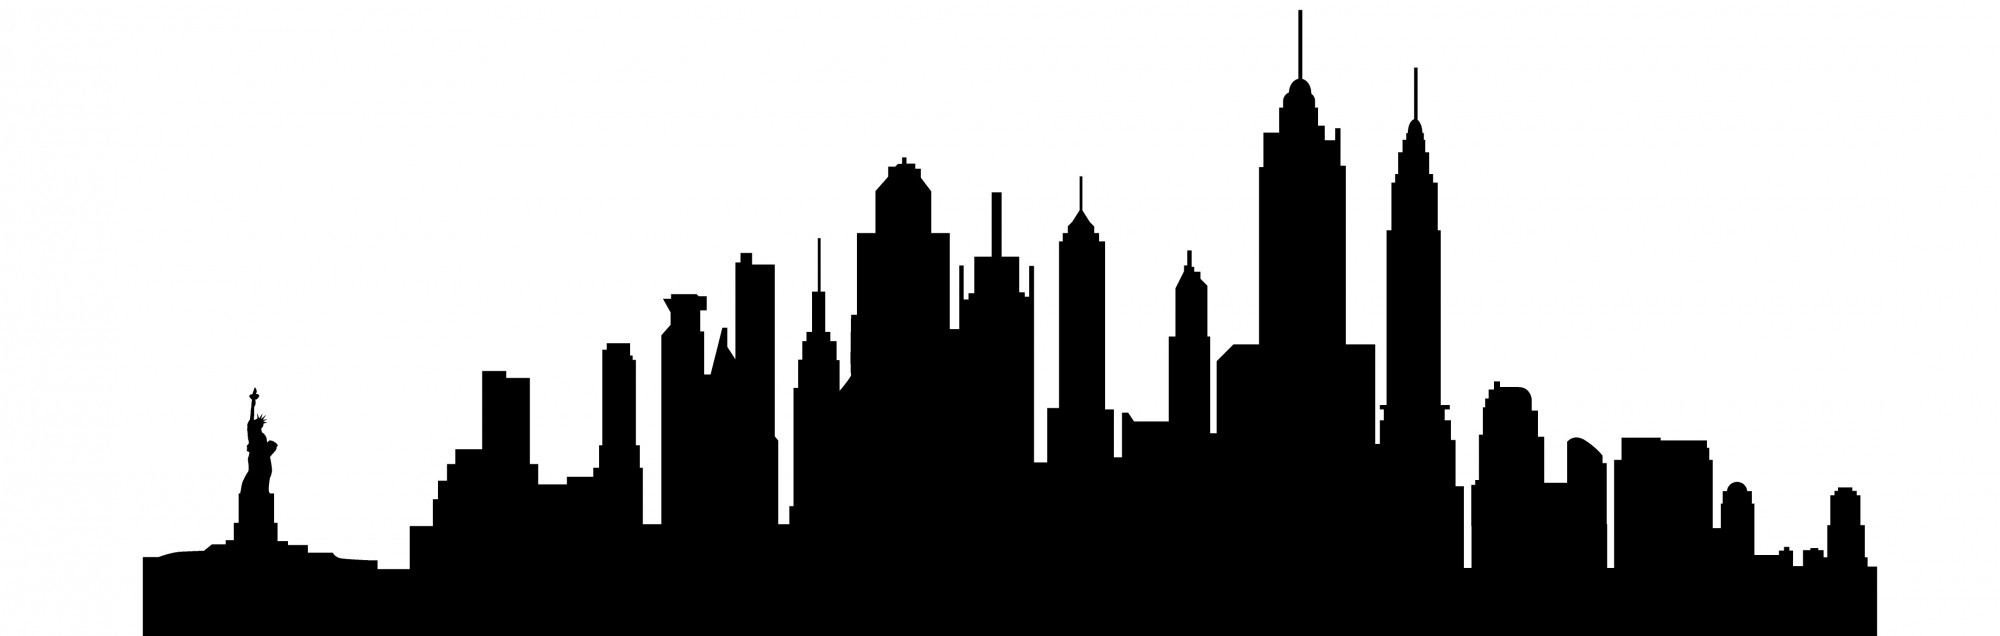 2000x636 Cropped Nyc Skyline Drawing And Free Clip Art New York City